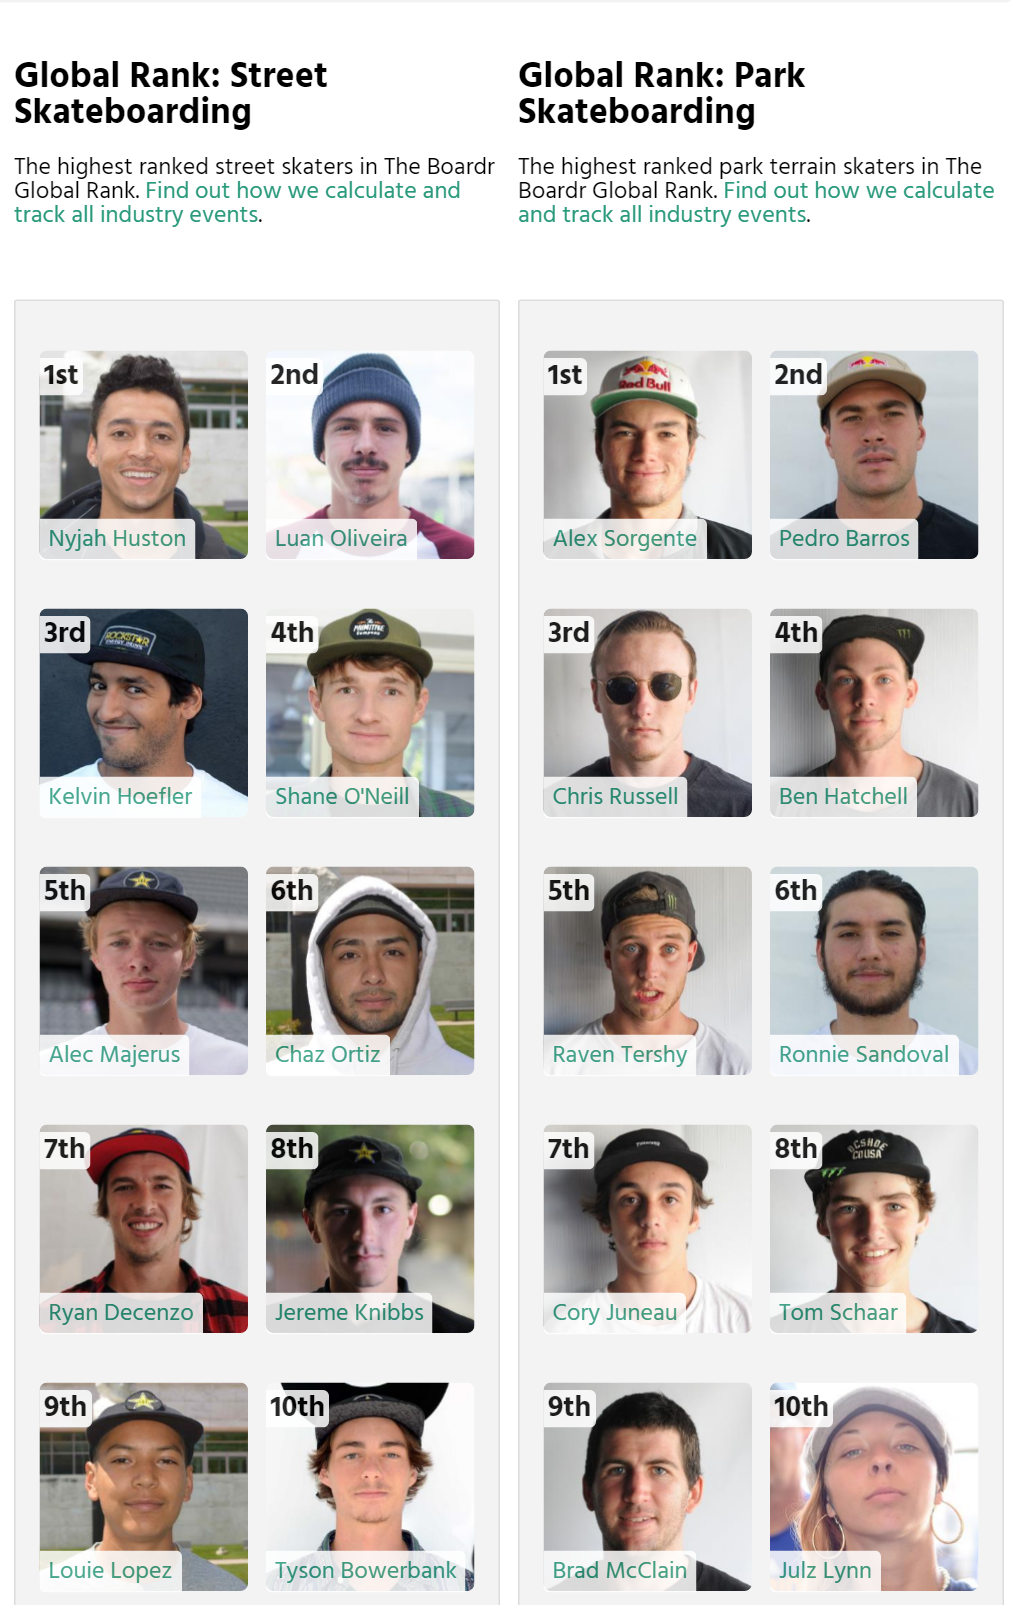 Skateboarding's Top 10 Ranked Skaters in Street